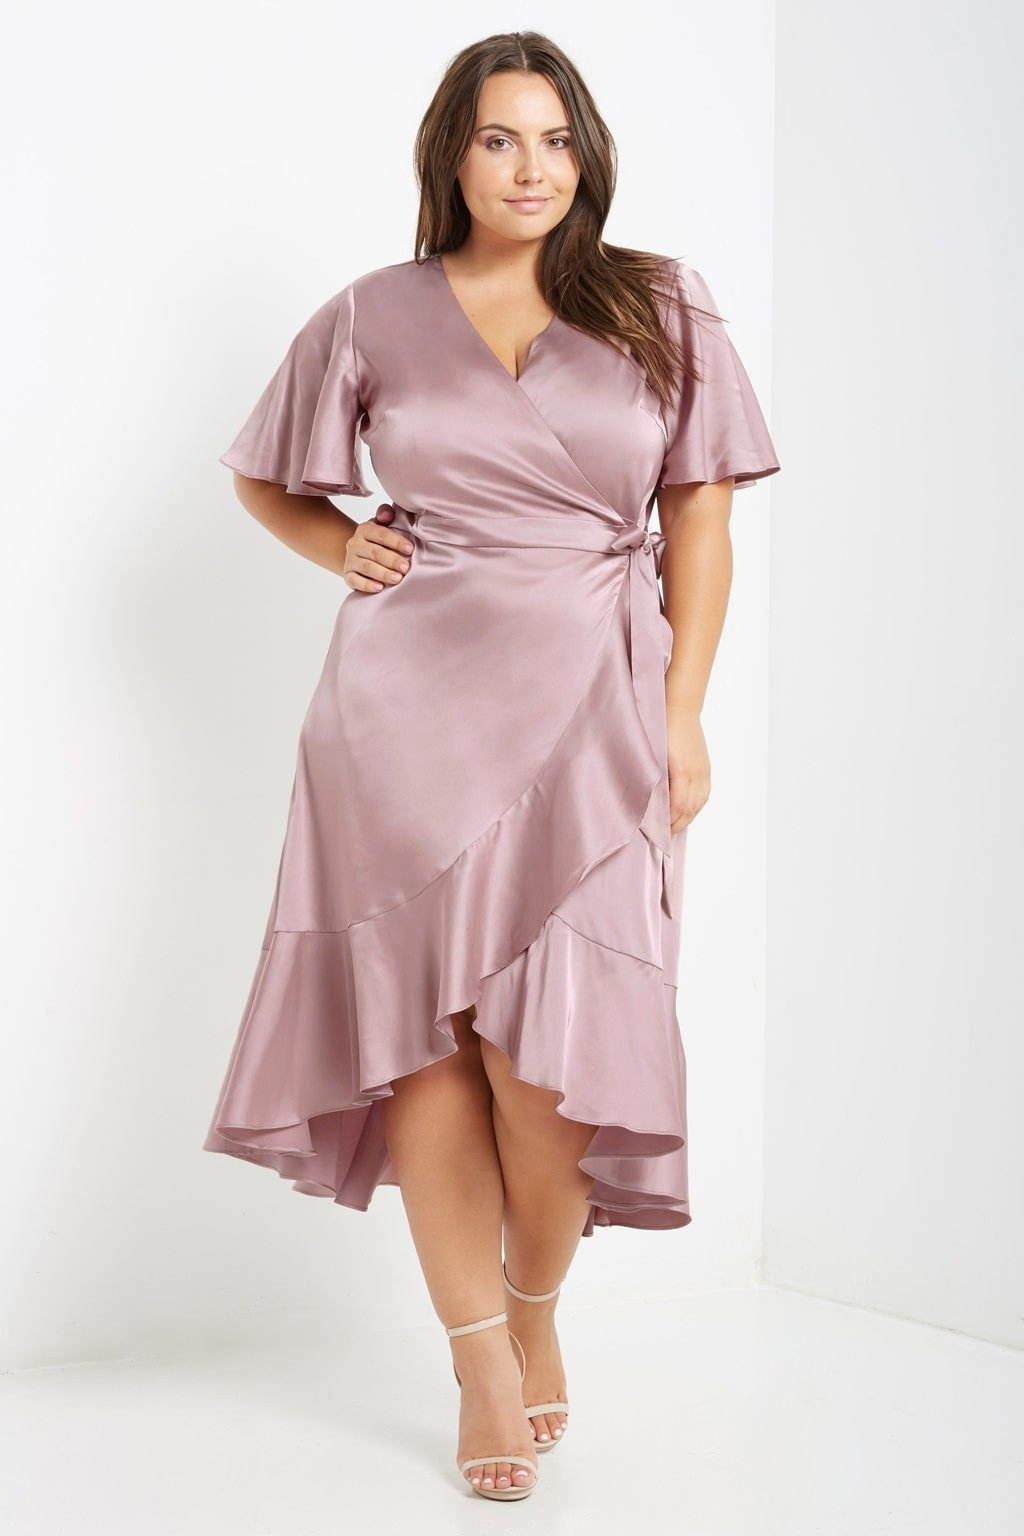 Dusty Pink Satin Wrap Midi Dress Plus Size in 2020 | Midi ...